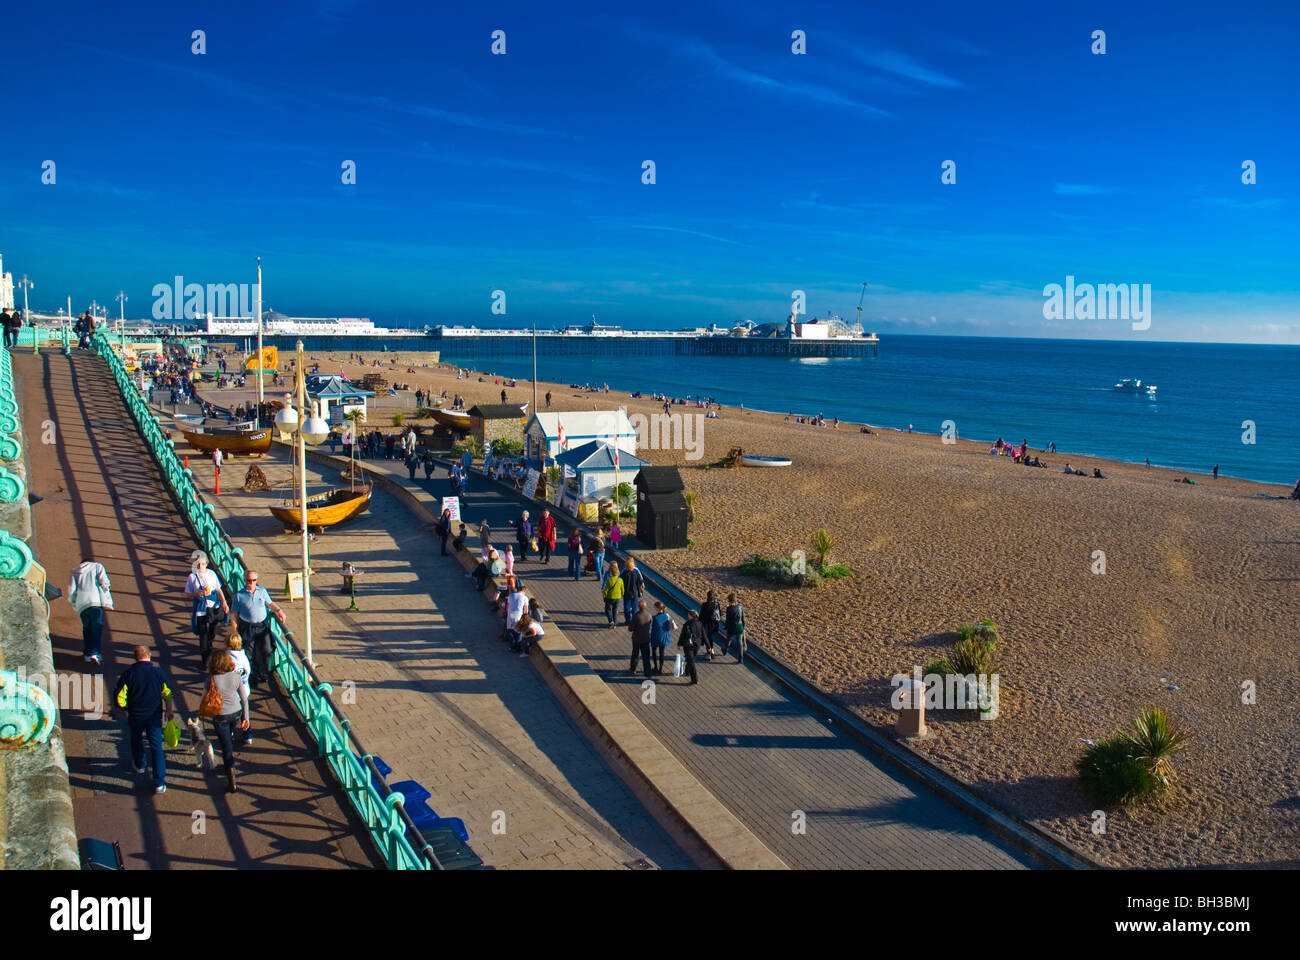 Seafront and King's Road esplanade beach central Brighton England UK Europe Stock Photo